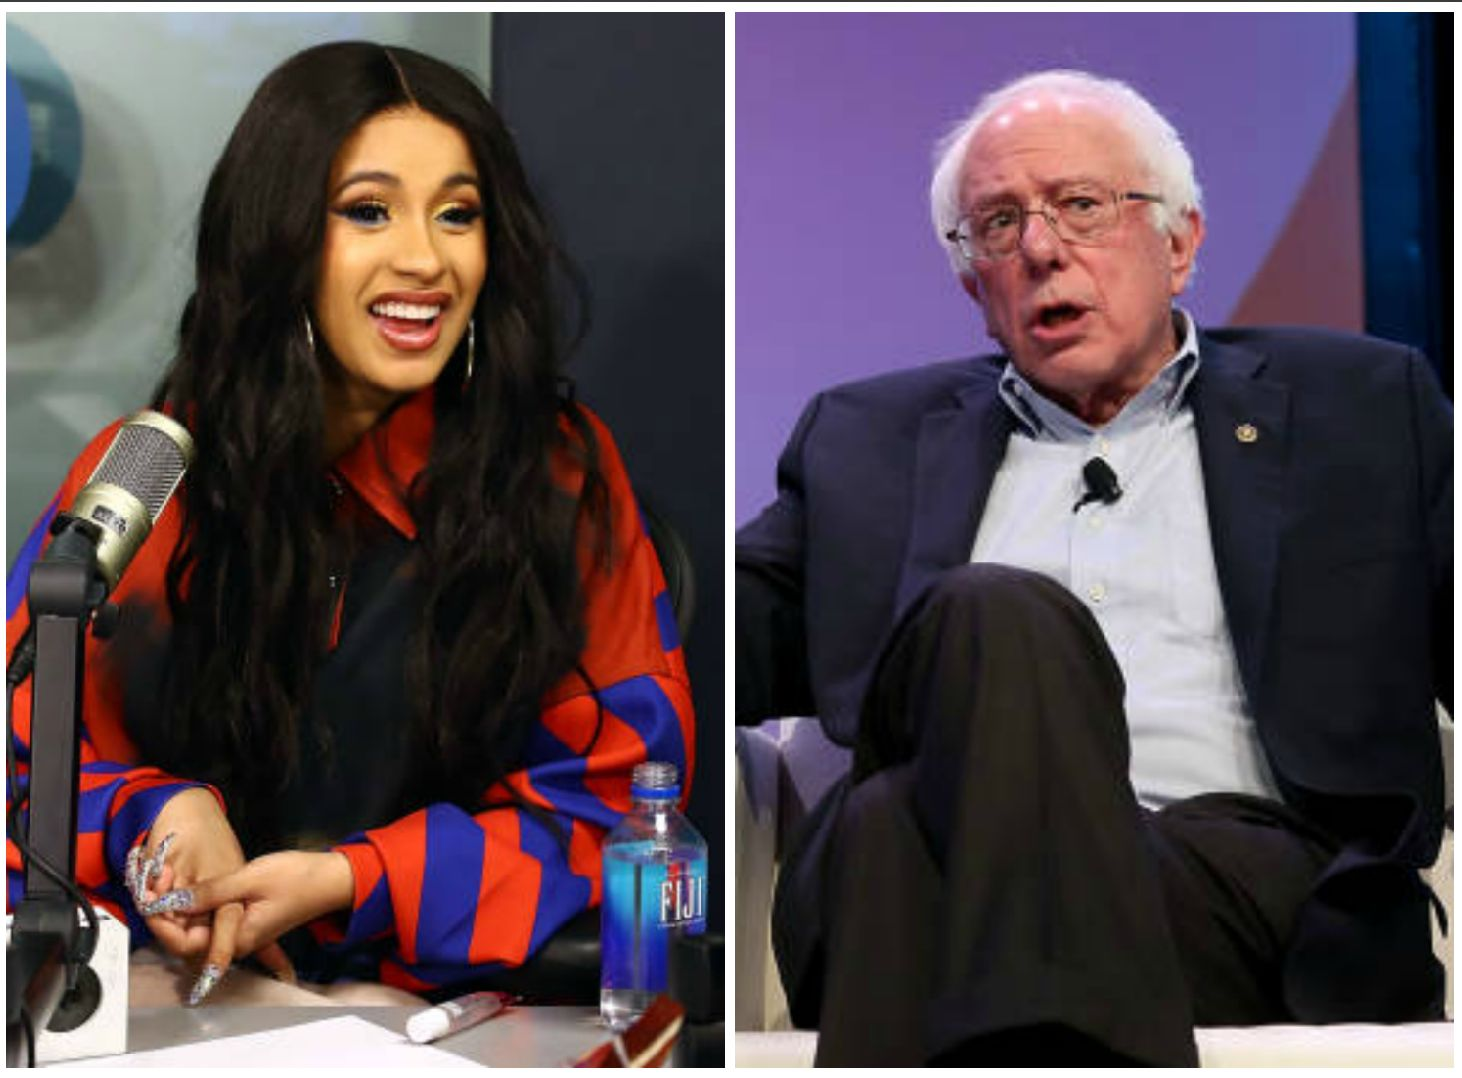 Bernie Sanders Backs Up Cardi B's Opinion on Social Security